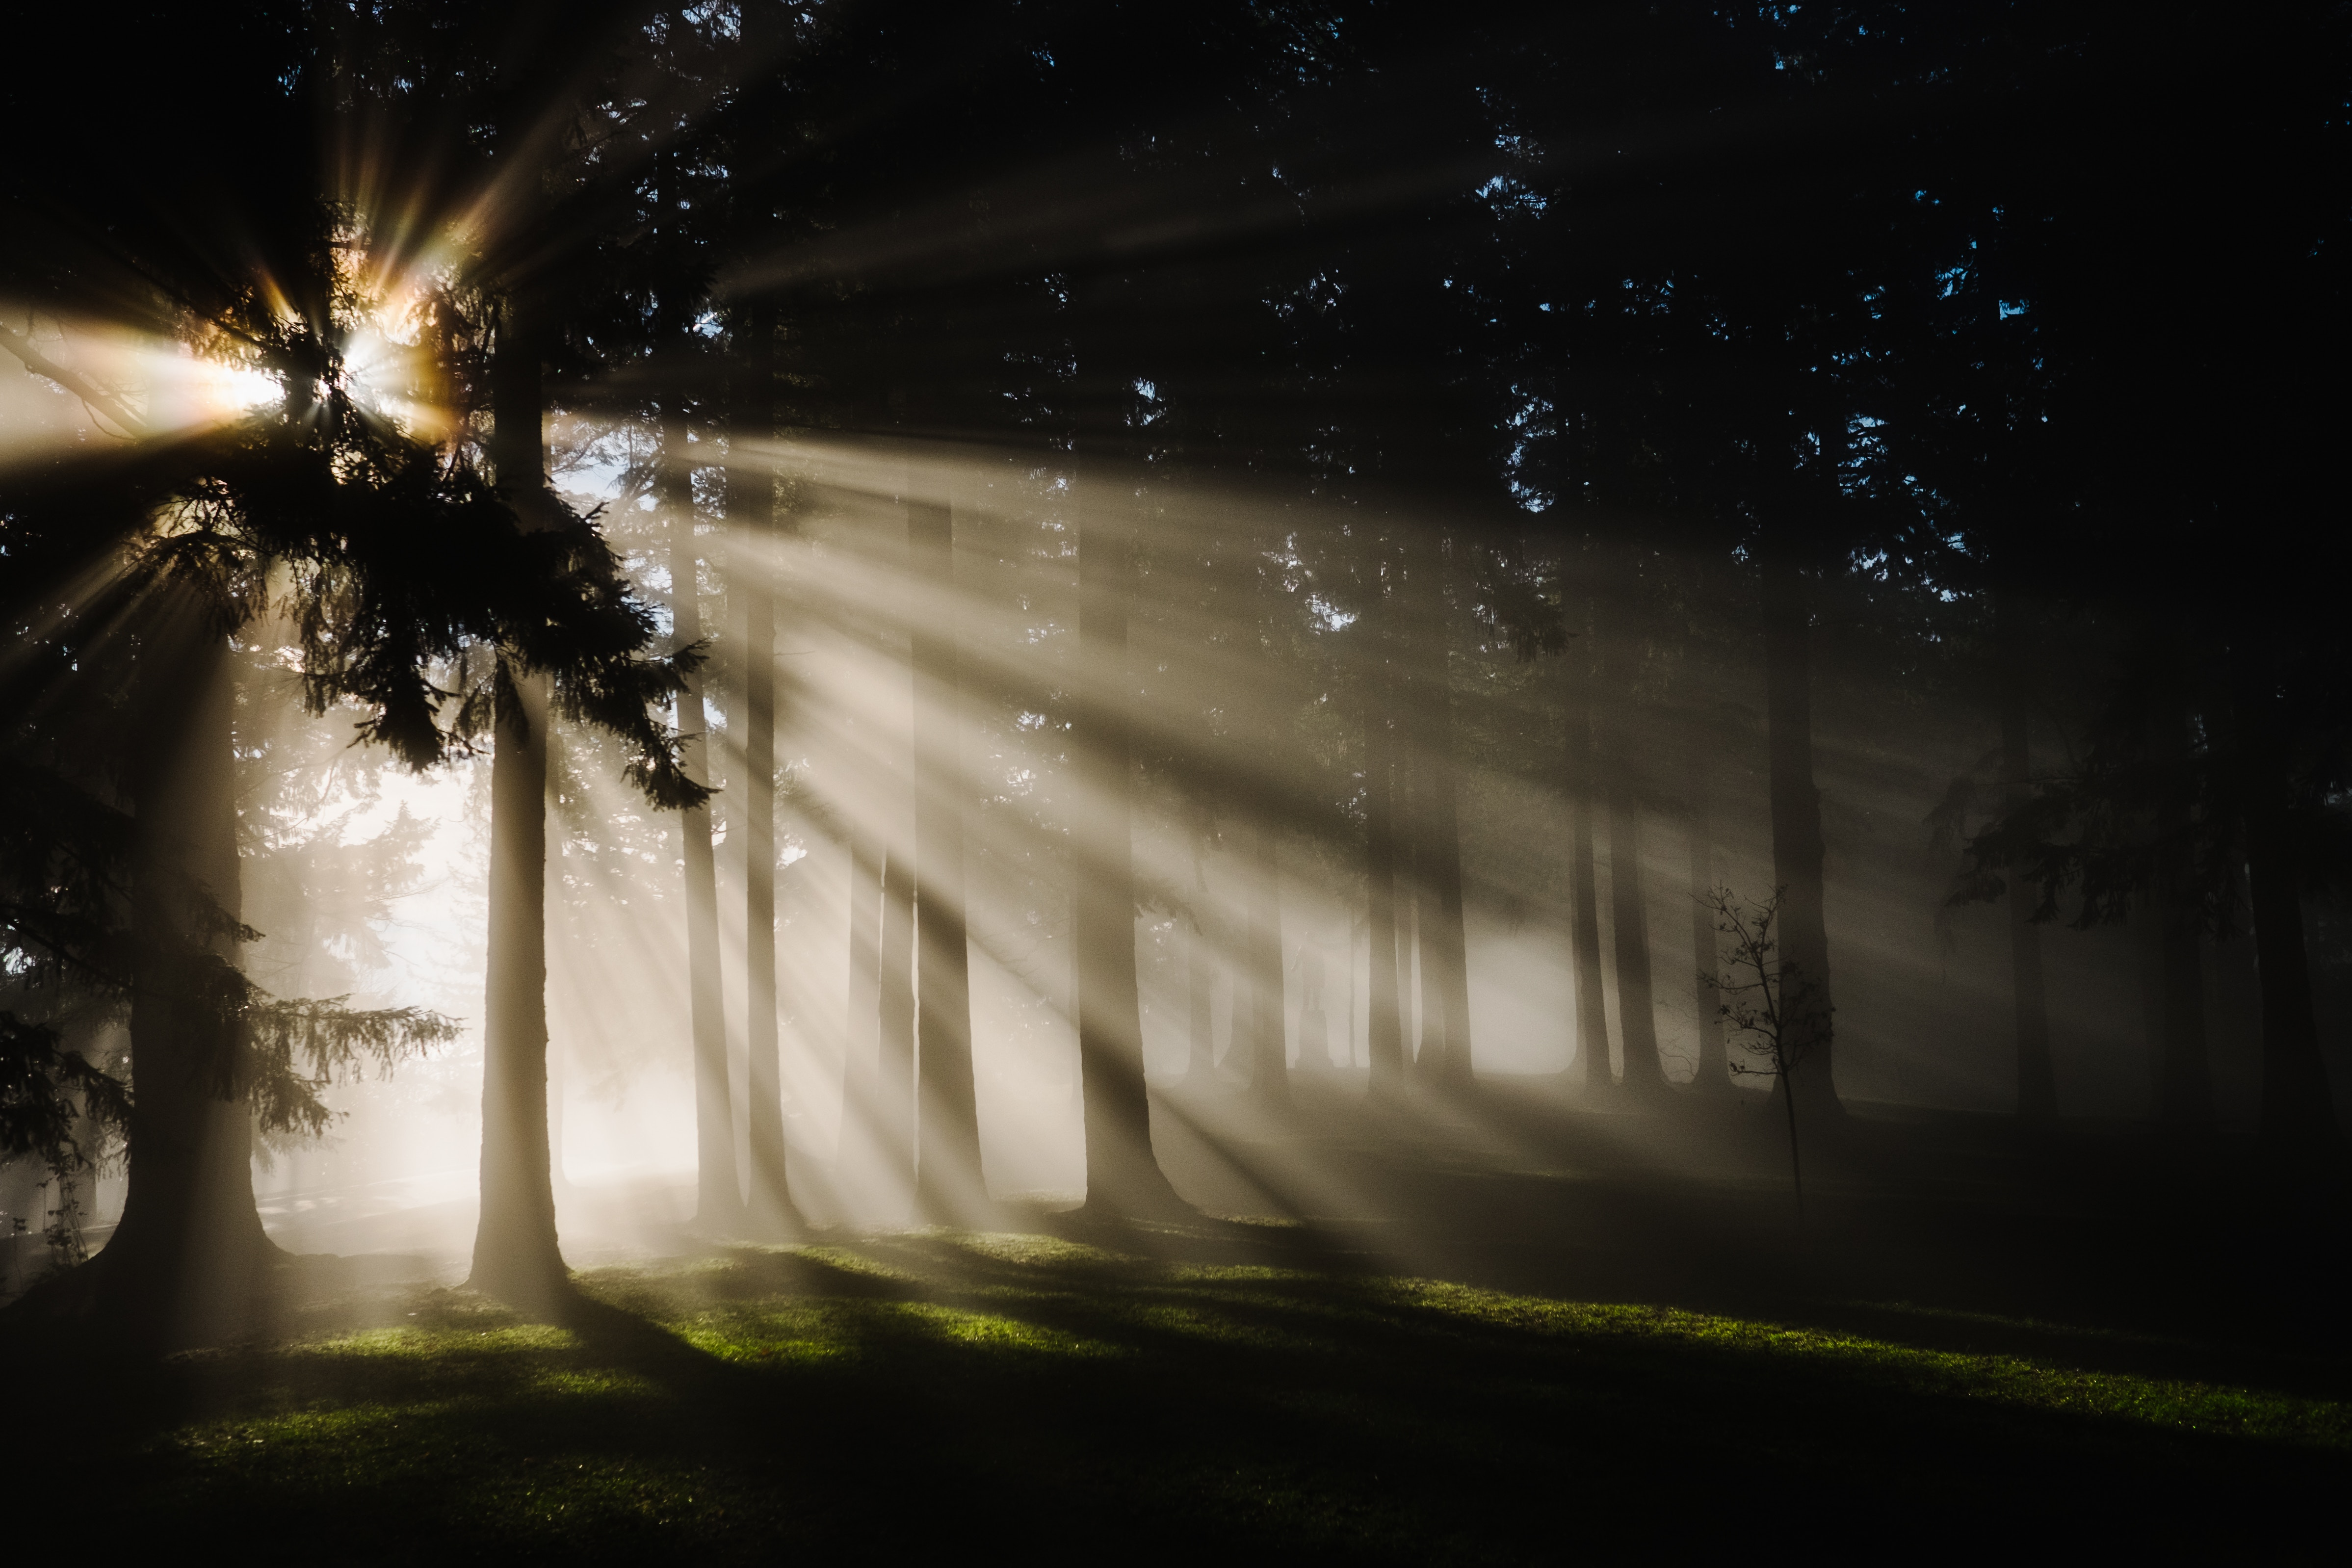 Shadowy forest scene with sun shining through the branches